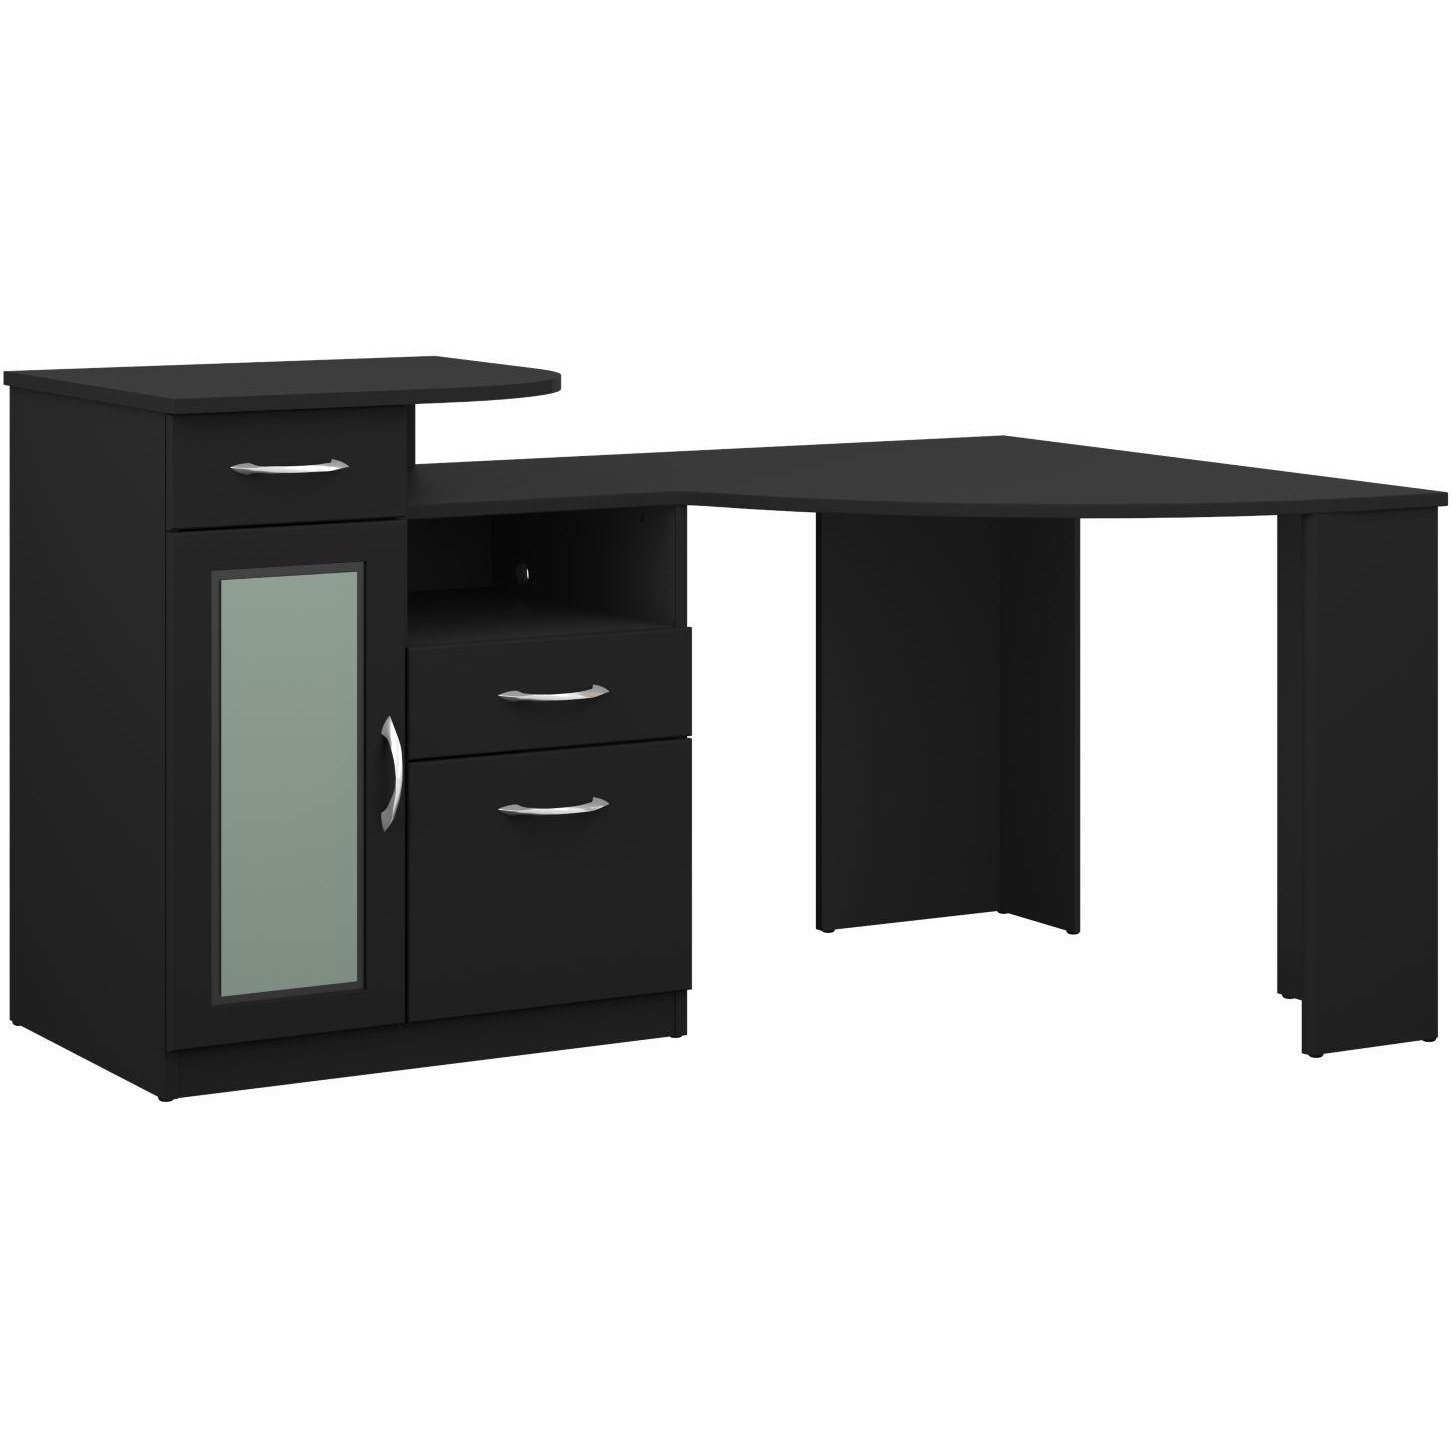 Black Corner Home Office Computer Desk - Vantage